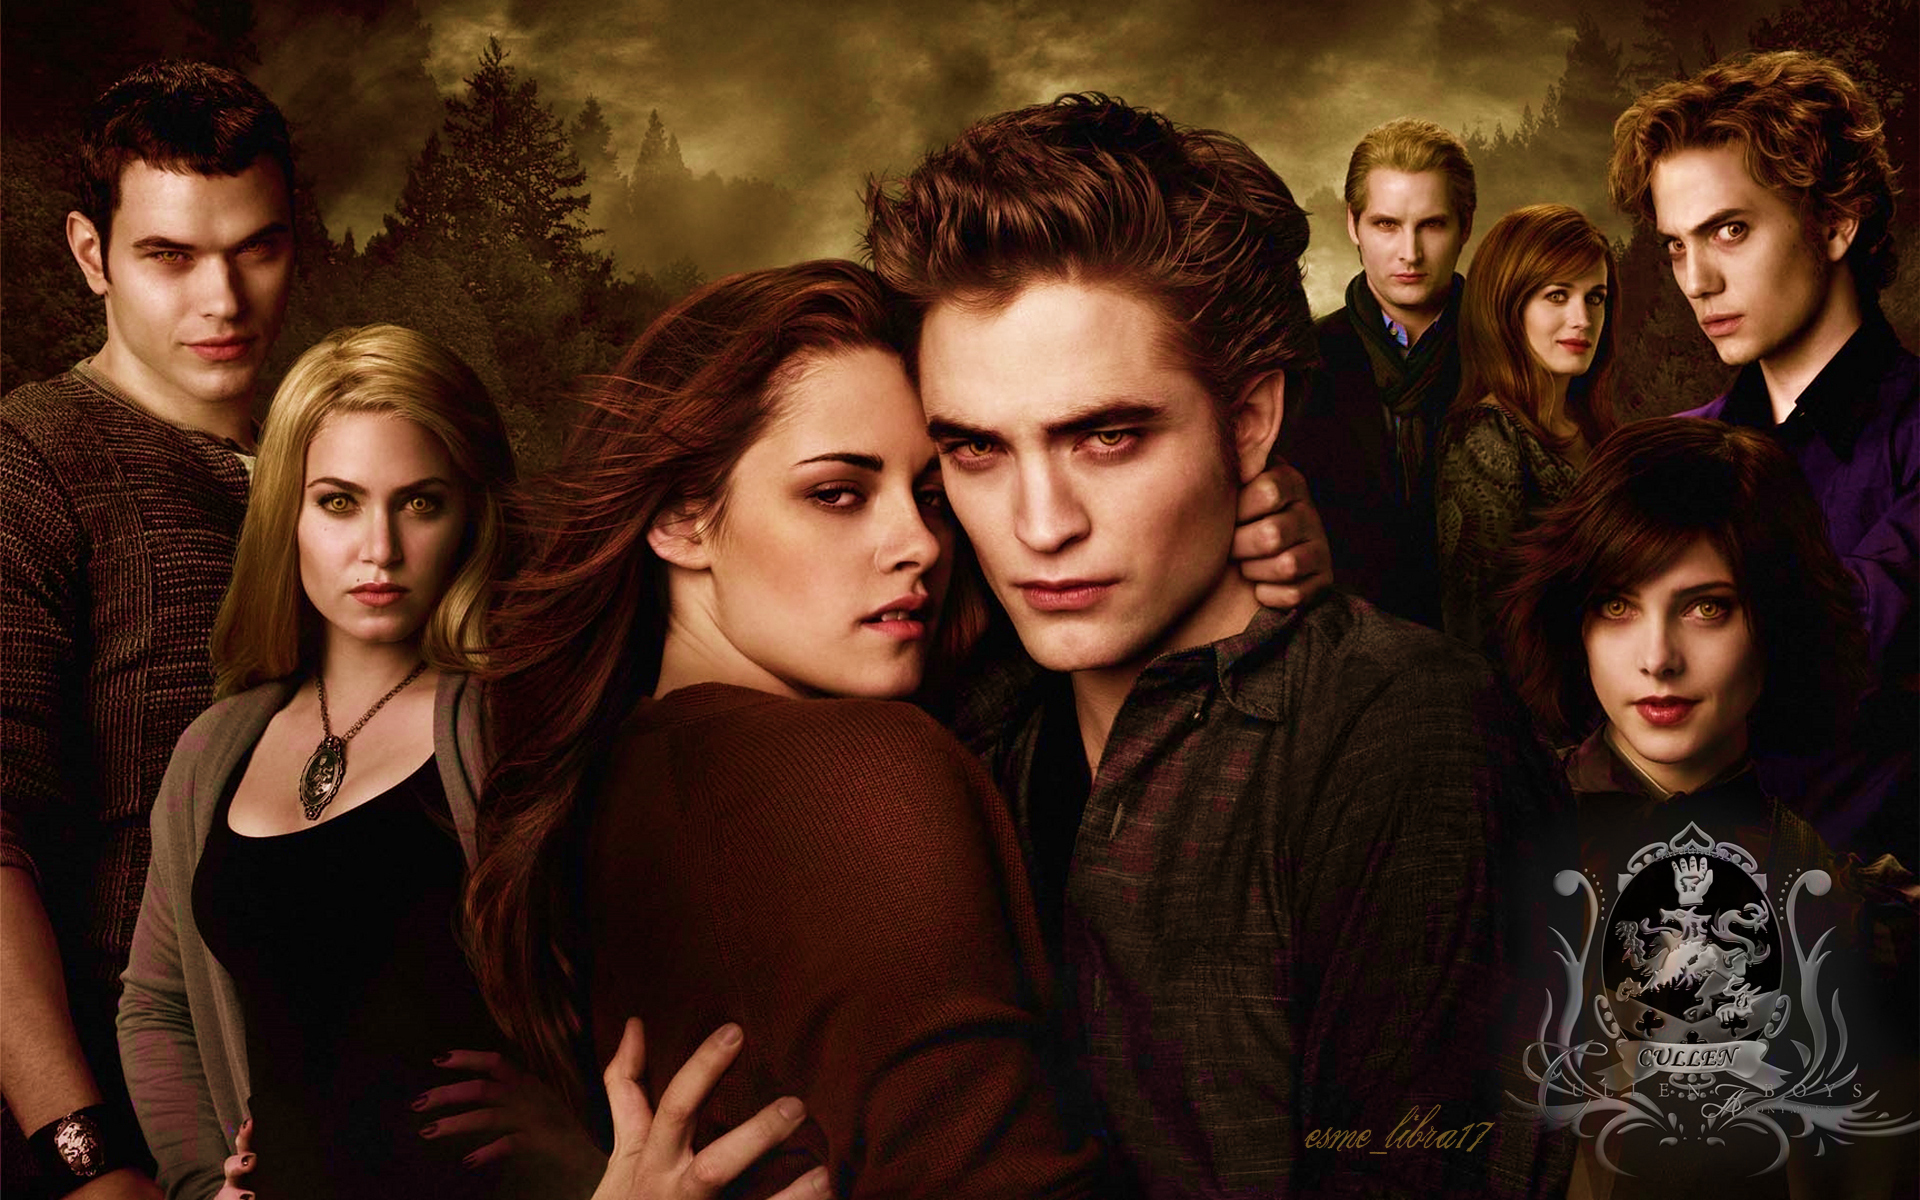 stephanie meyer s new moon summary characters New moon: twilight (stylized as stephanie meyer announced a new gender-swapped version of the novel in fact, the characters seem to be an amalgam of meyer's literary imagination and the actors' actual looks ew magazine published finished illustrations of edward.